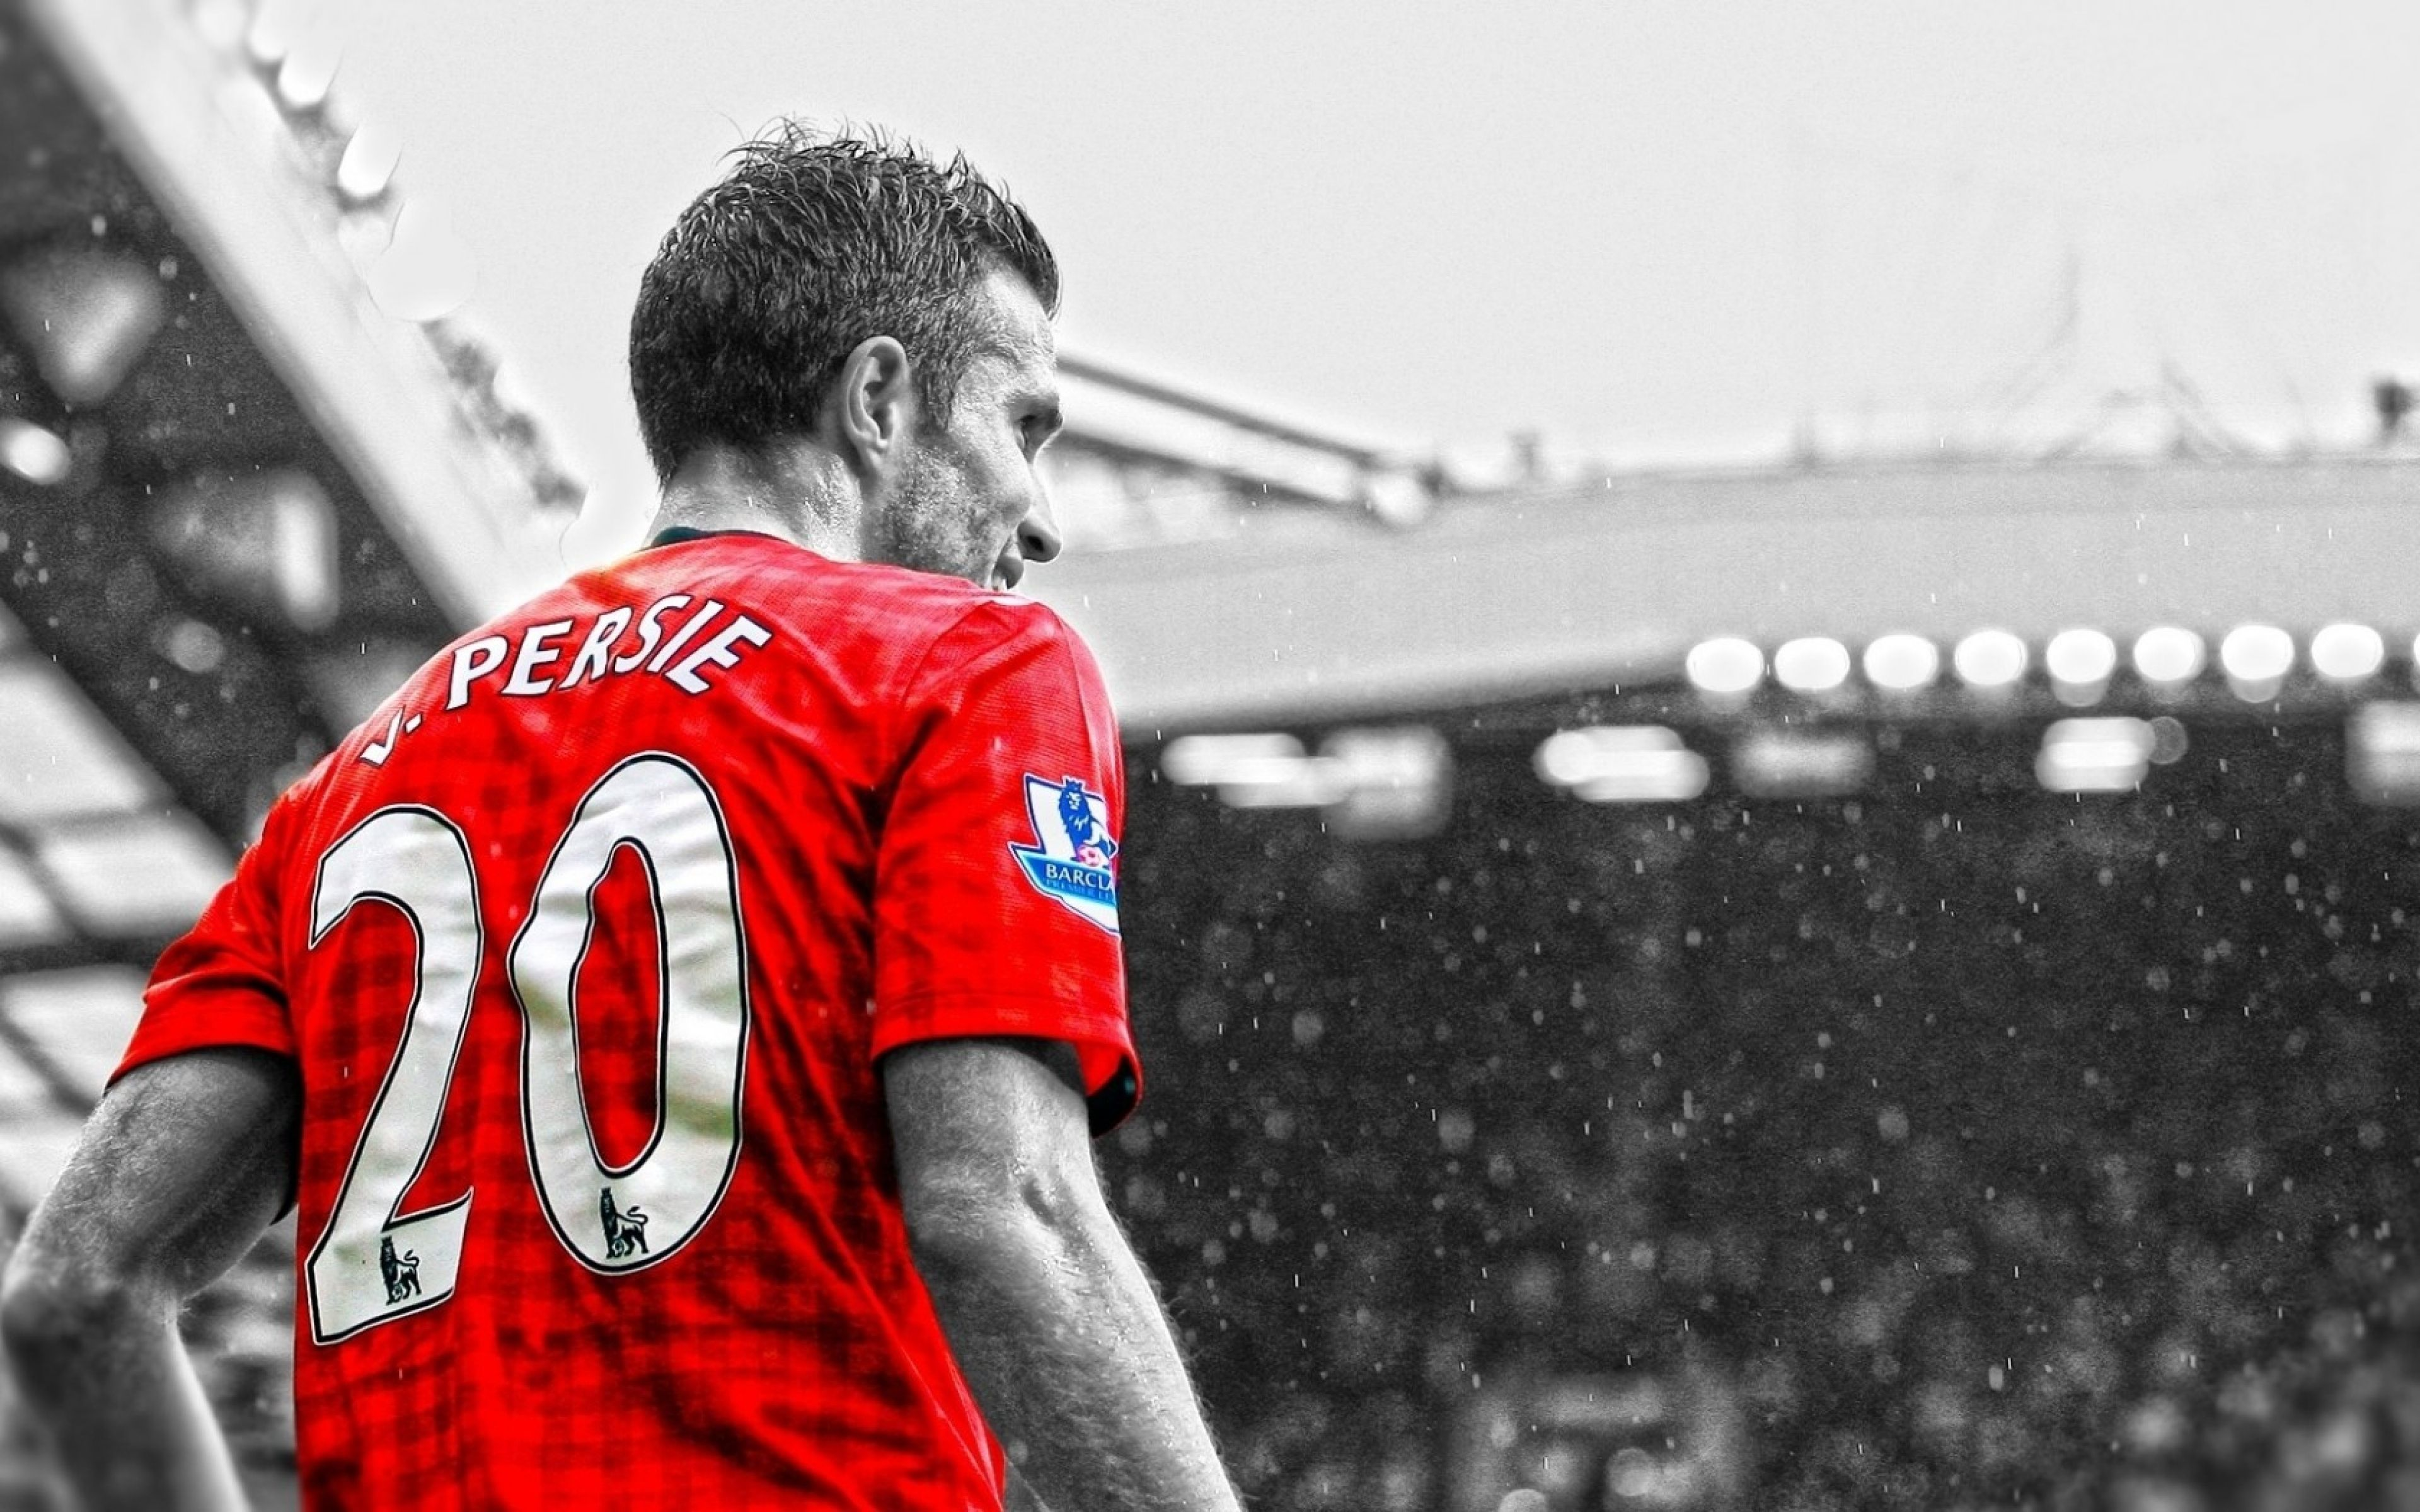 best soccer wallpapers, football players wallpapers for mobile